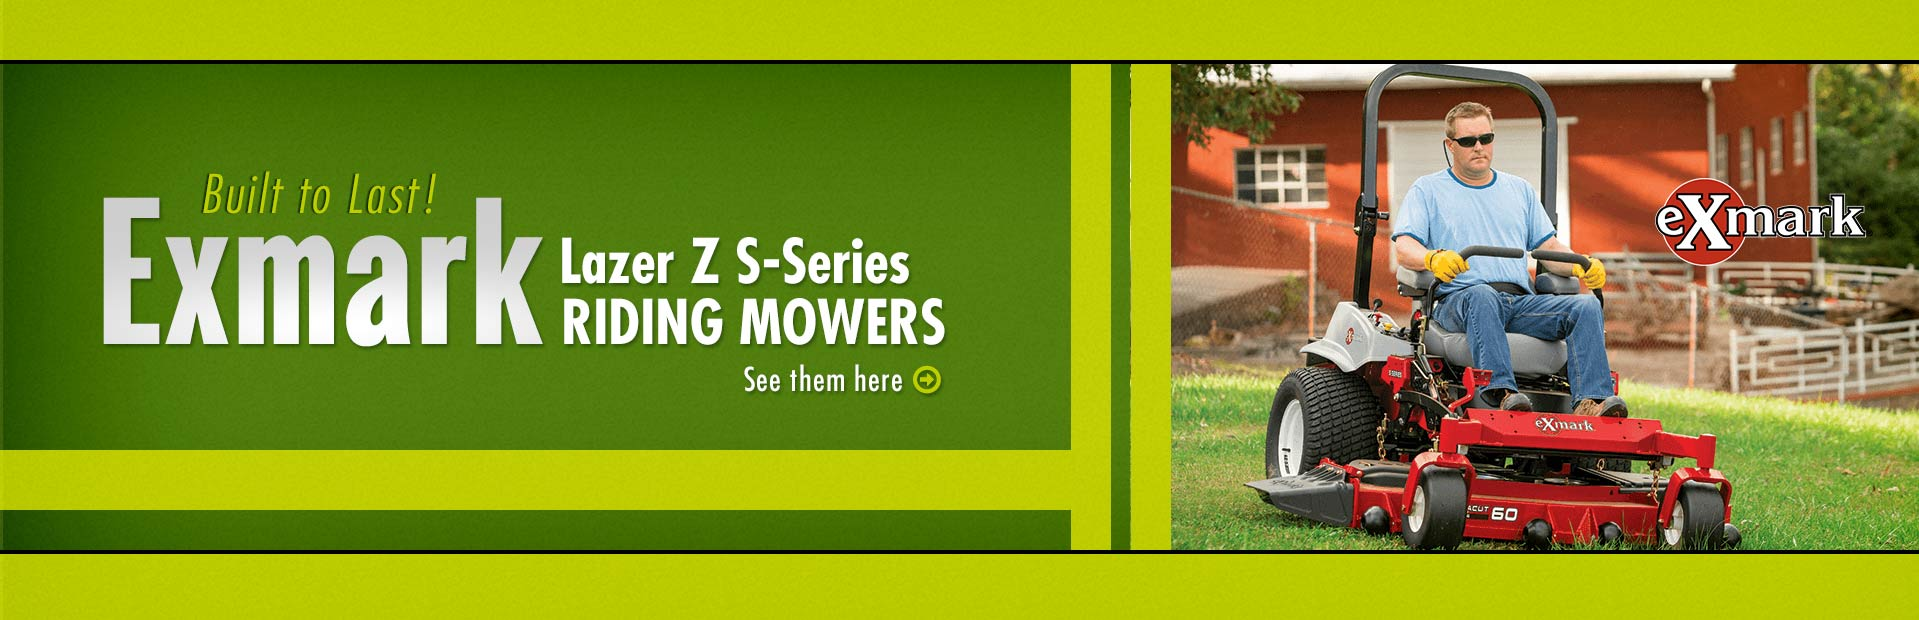 Browse 100's of New and Used Golf Carts | Zero Turn Mowers